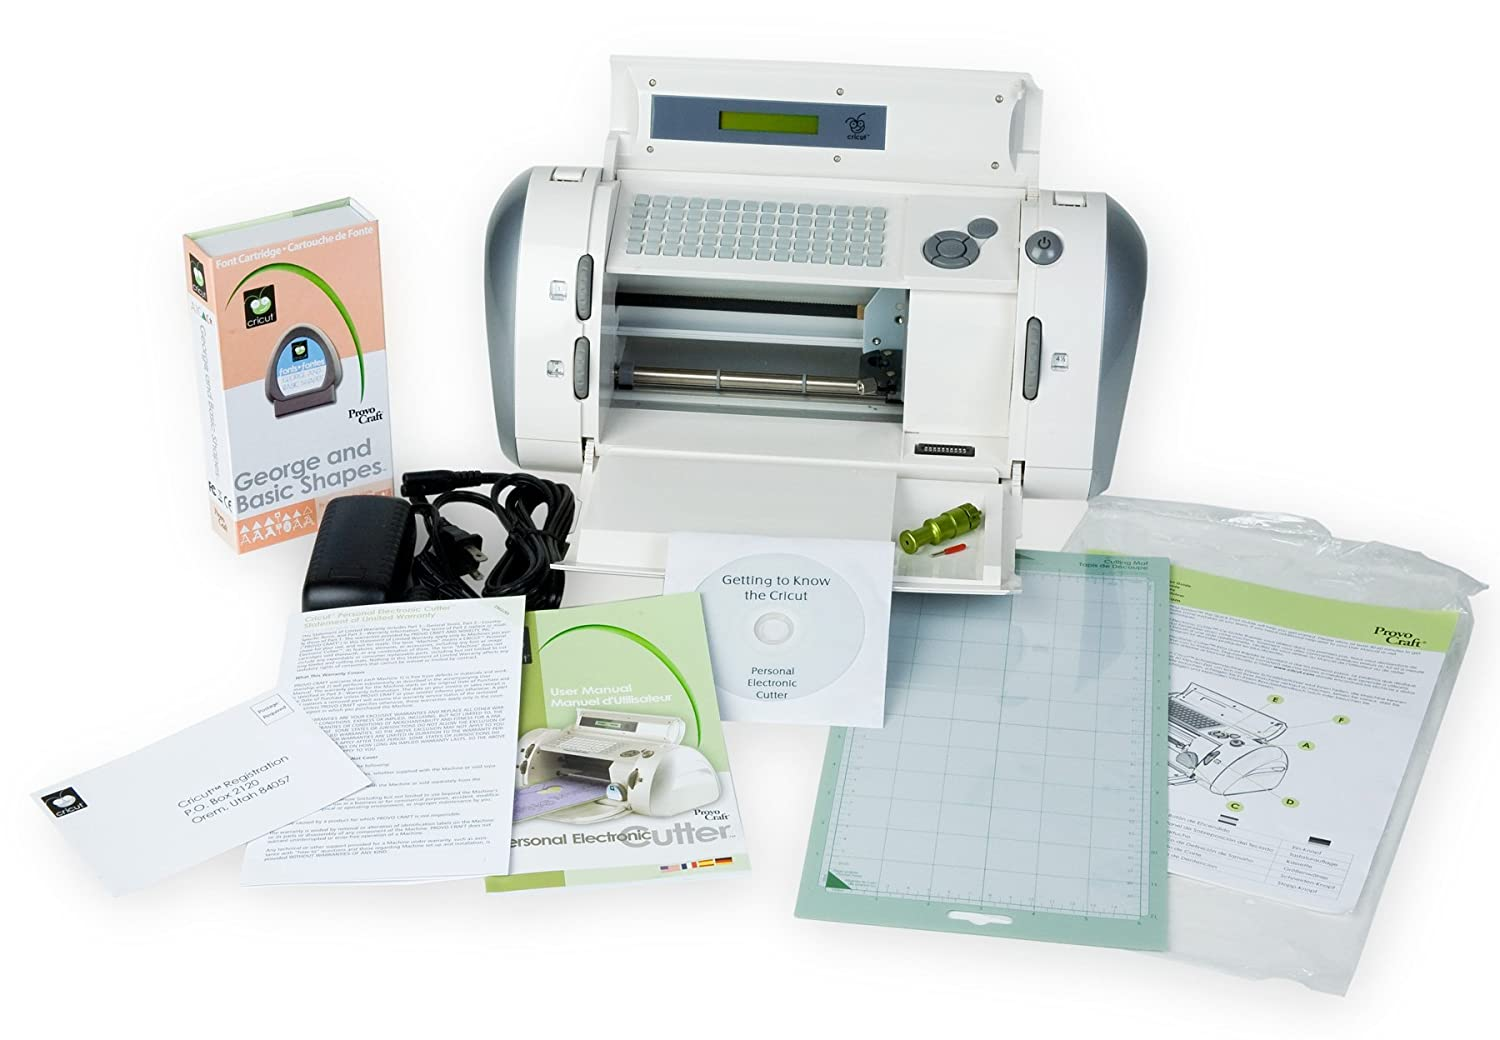 Best cricut cartridges for scrapbooking